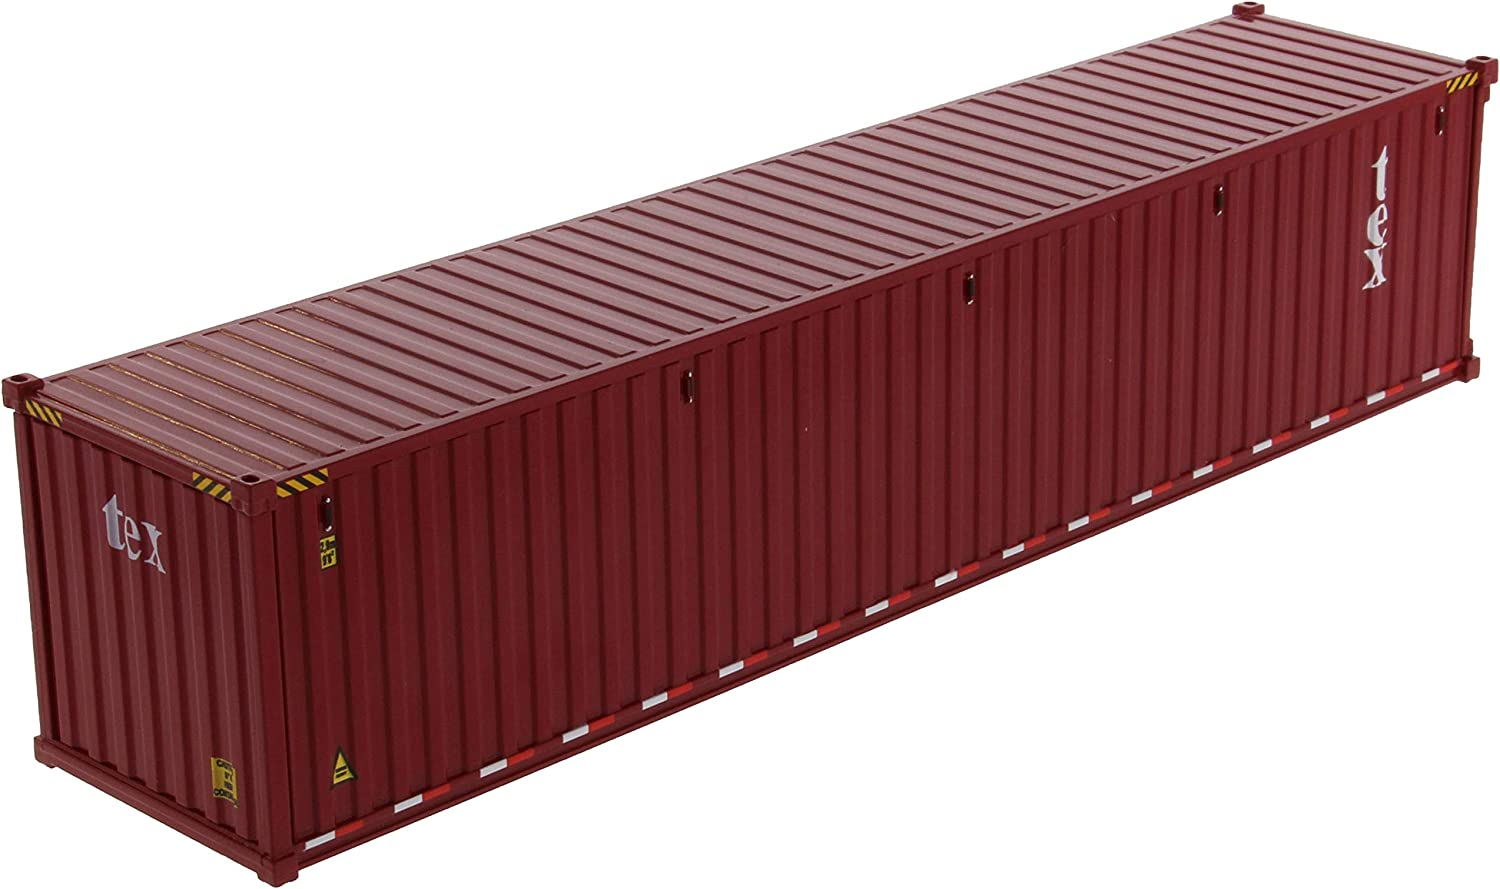 40 Dry Goods Sea Container TEX Burgundy Transport Series 1//50 Model by Diecast Masters 91027 A